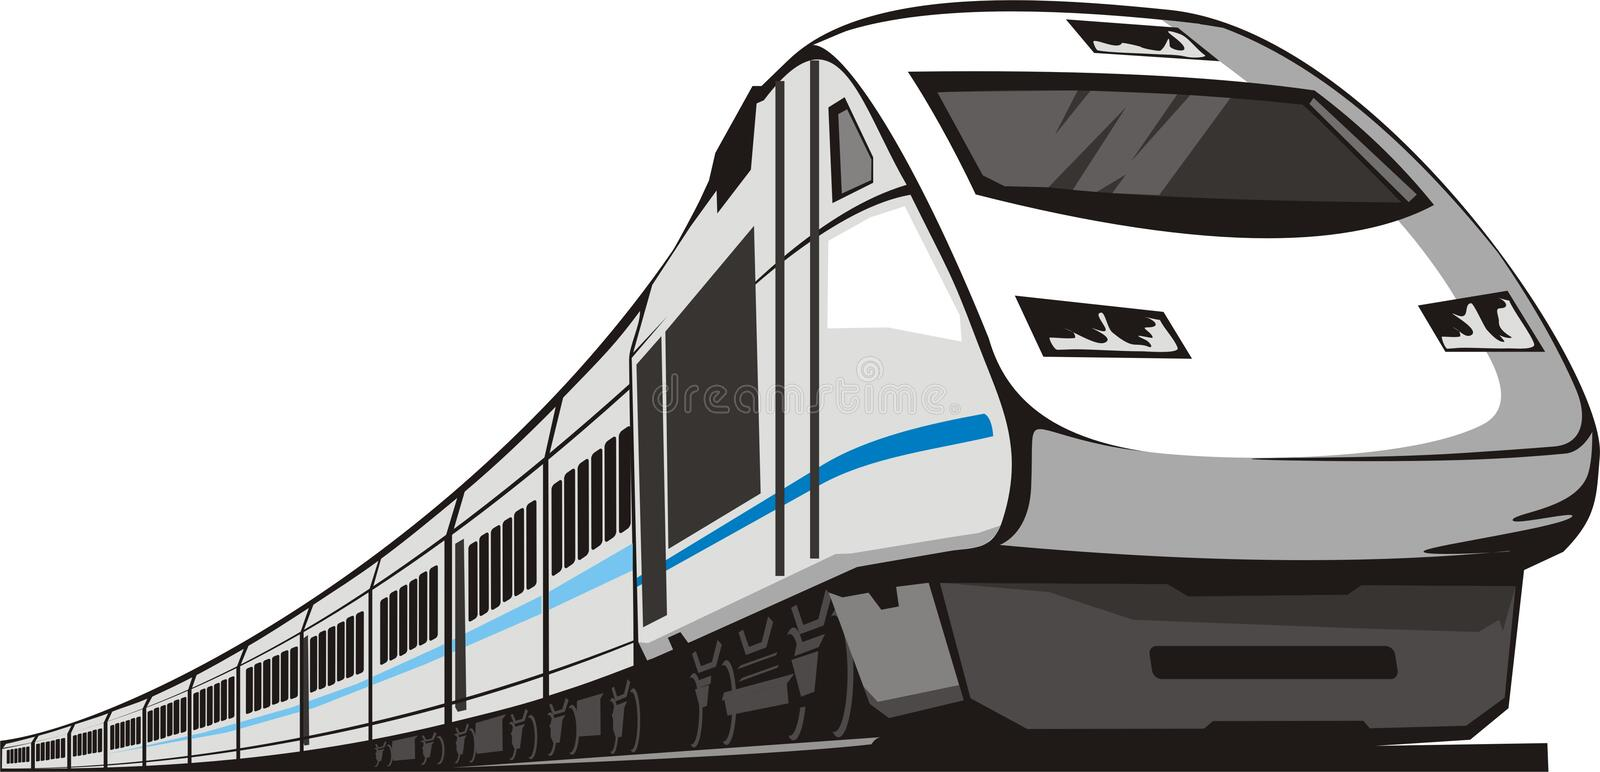 Passenger train vector illustration